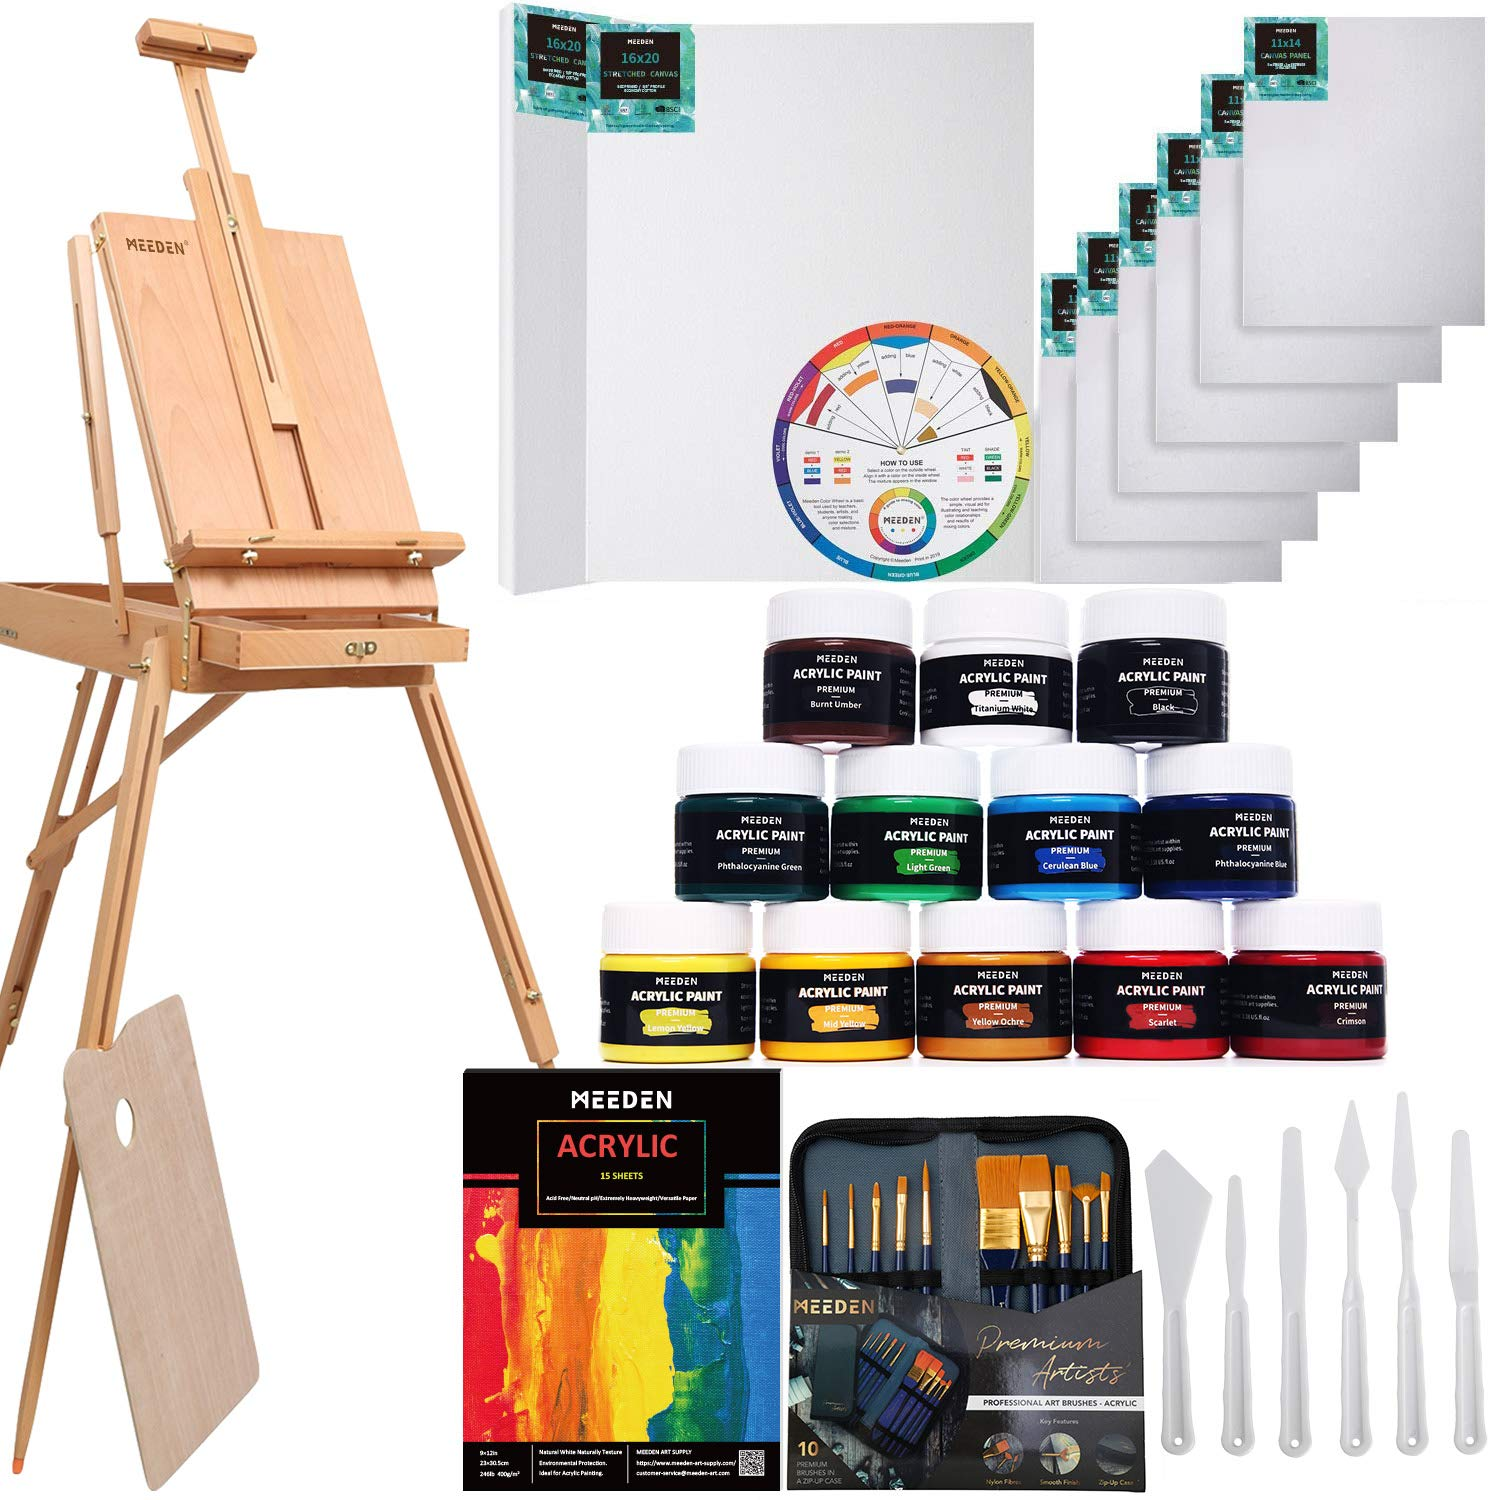 MEEDEN 40 Pcs Deluxe Artist Painting Kit with French Style Easel, Acrylic Paint Set, Paintbrushes, Canvas Panel, Stretched Canvas, Nice Gift for Artists, Beginner & Adults